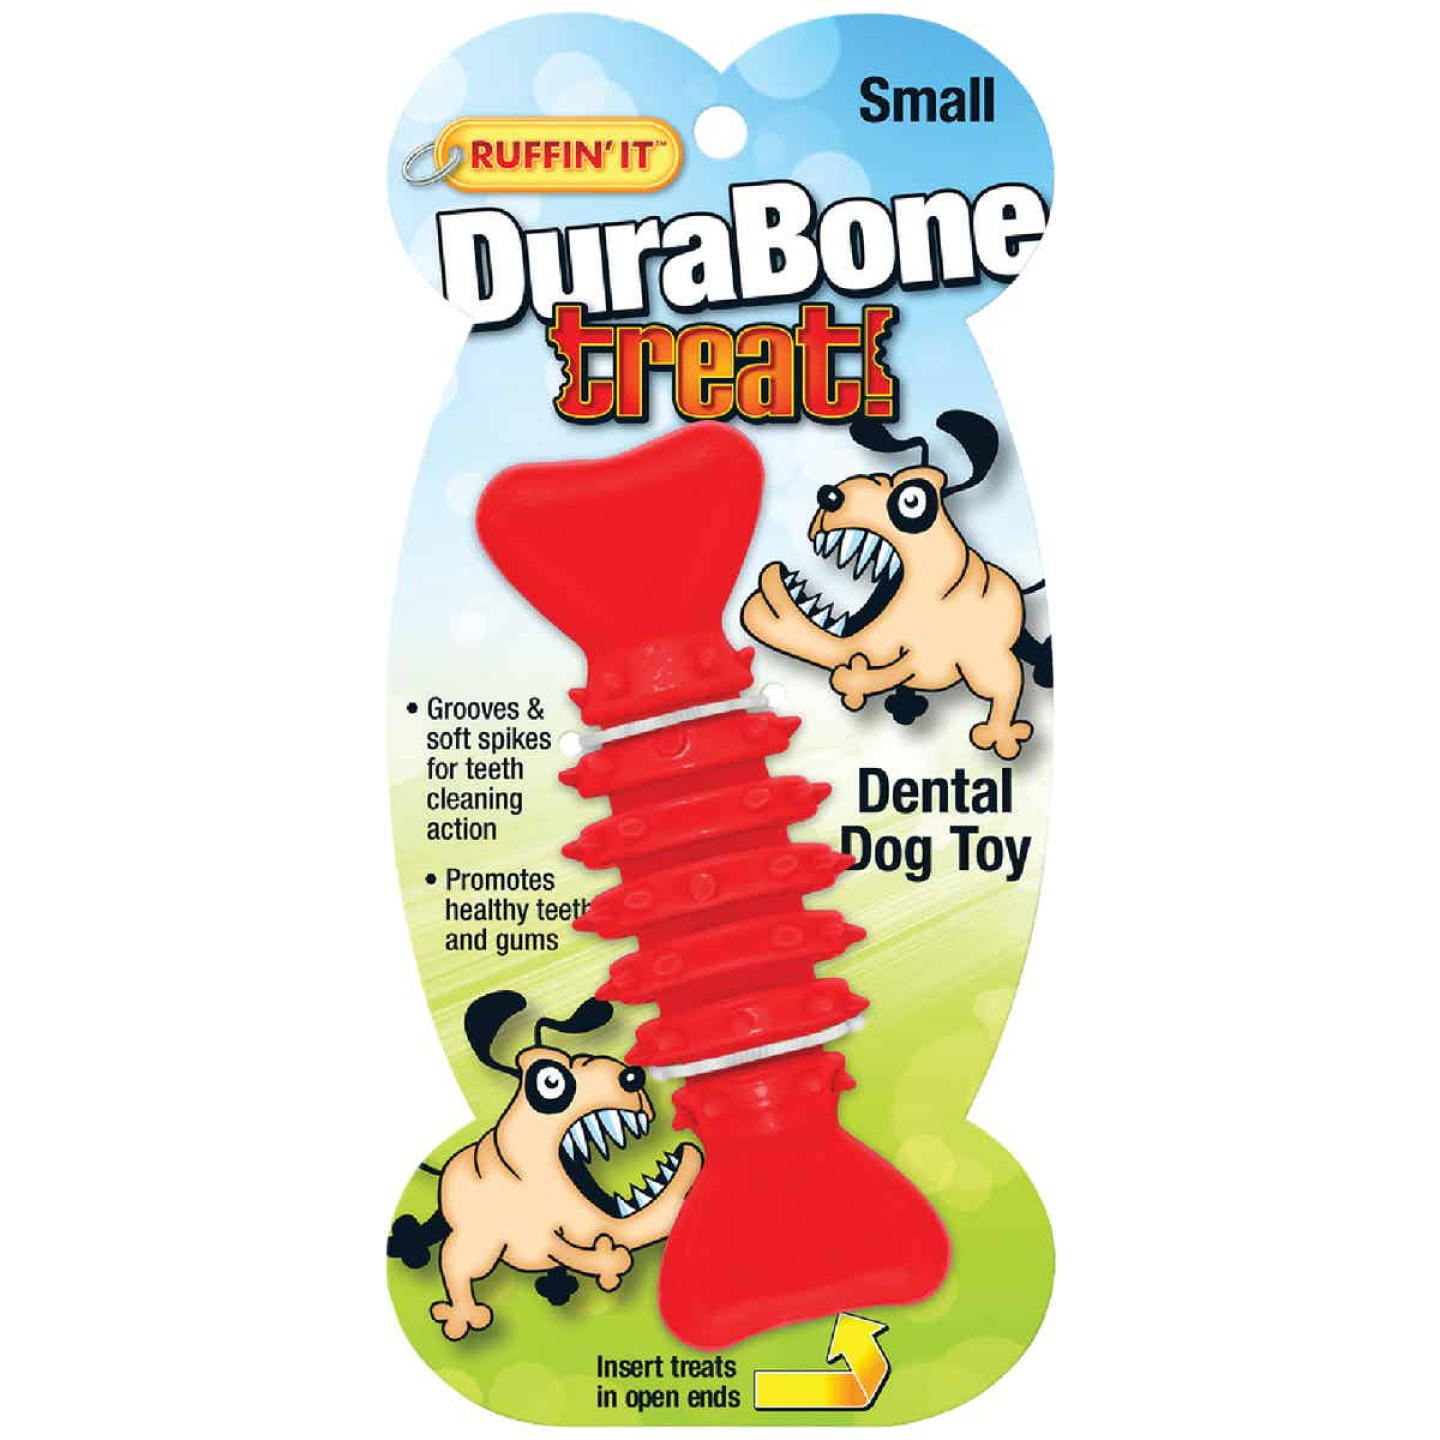 Westminster Pet Ruffin' it Durabone 4.75 In. Chew Dental Dog Toy Image 2